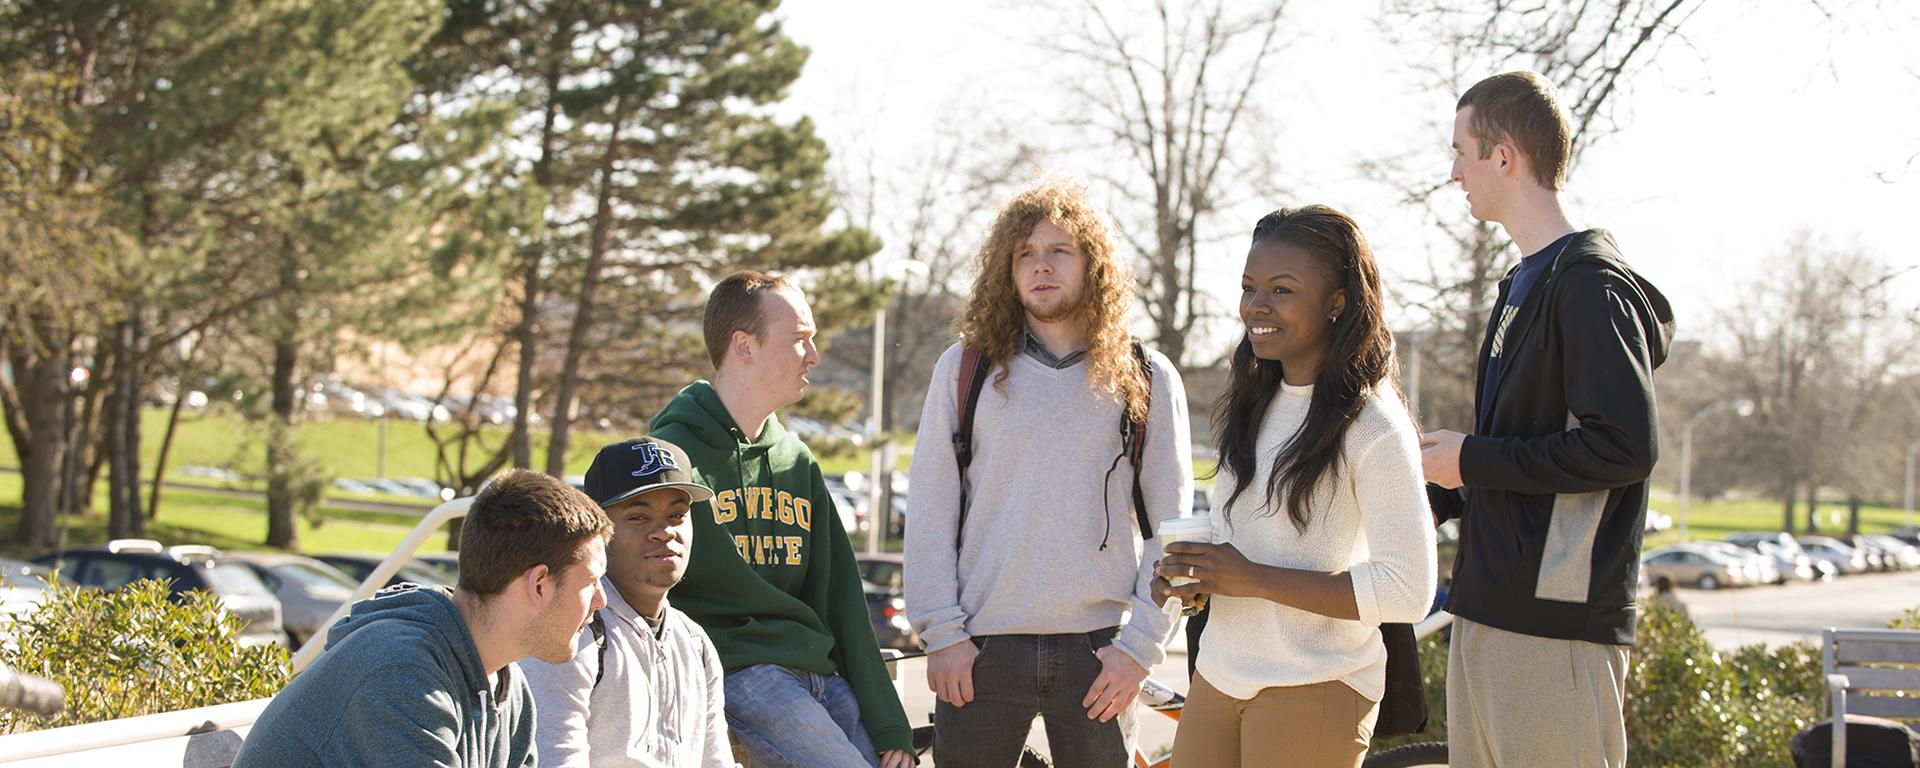 Students sitting in a group outside on campus